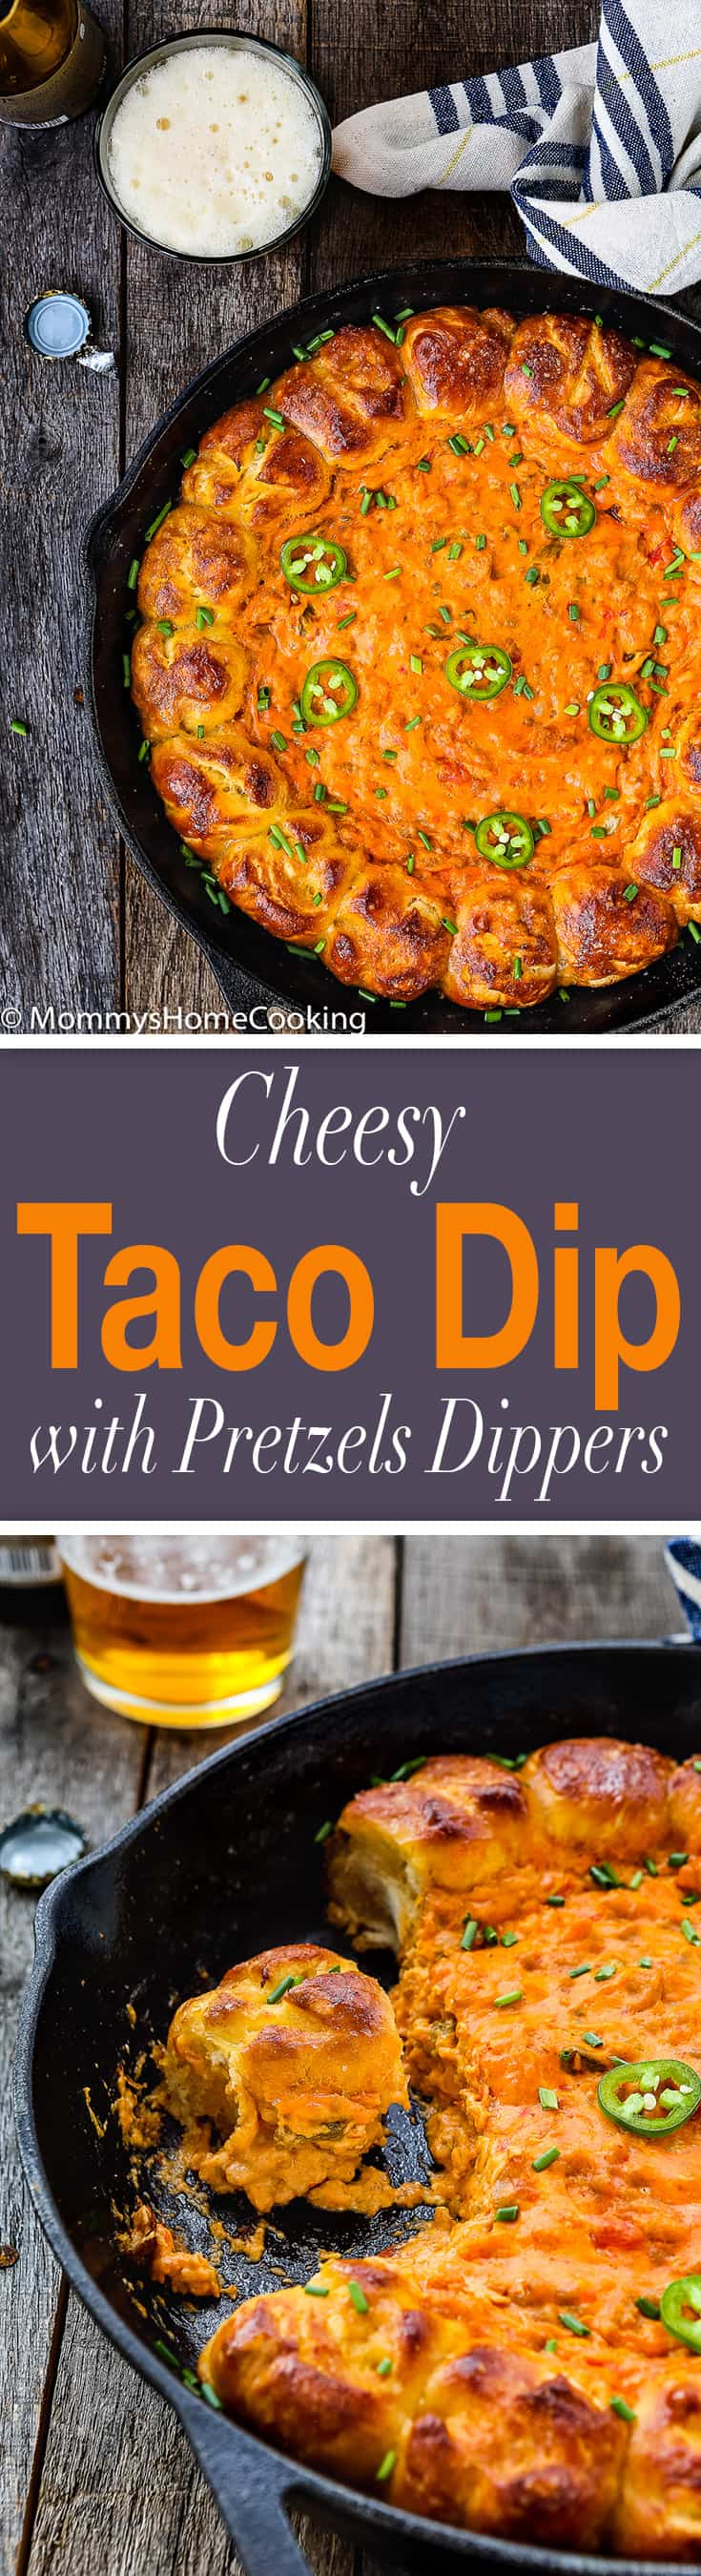 Cheesy Taco Dip with Garlic Pretzels Dippers | Mommy's Home Cooking